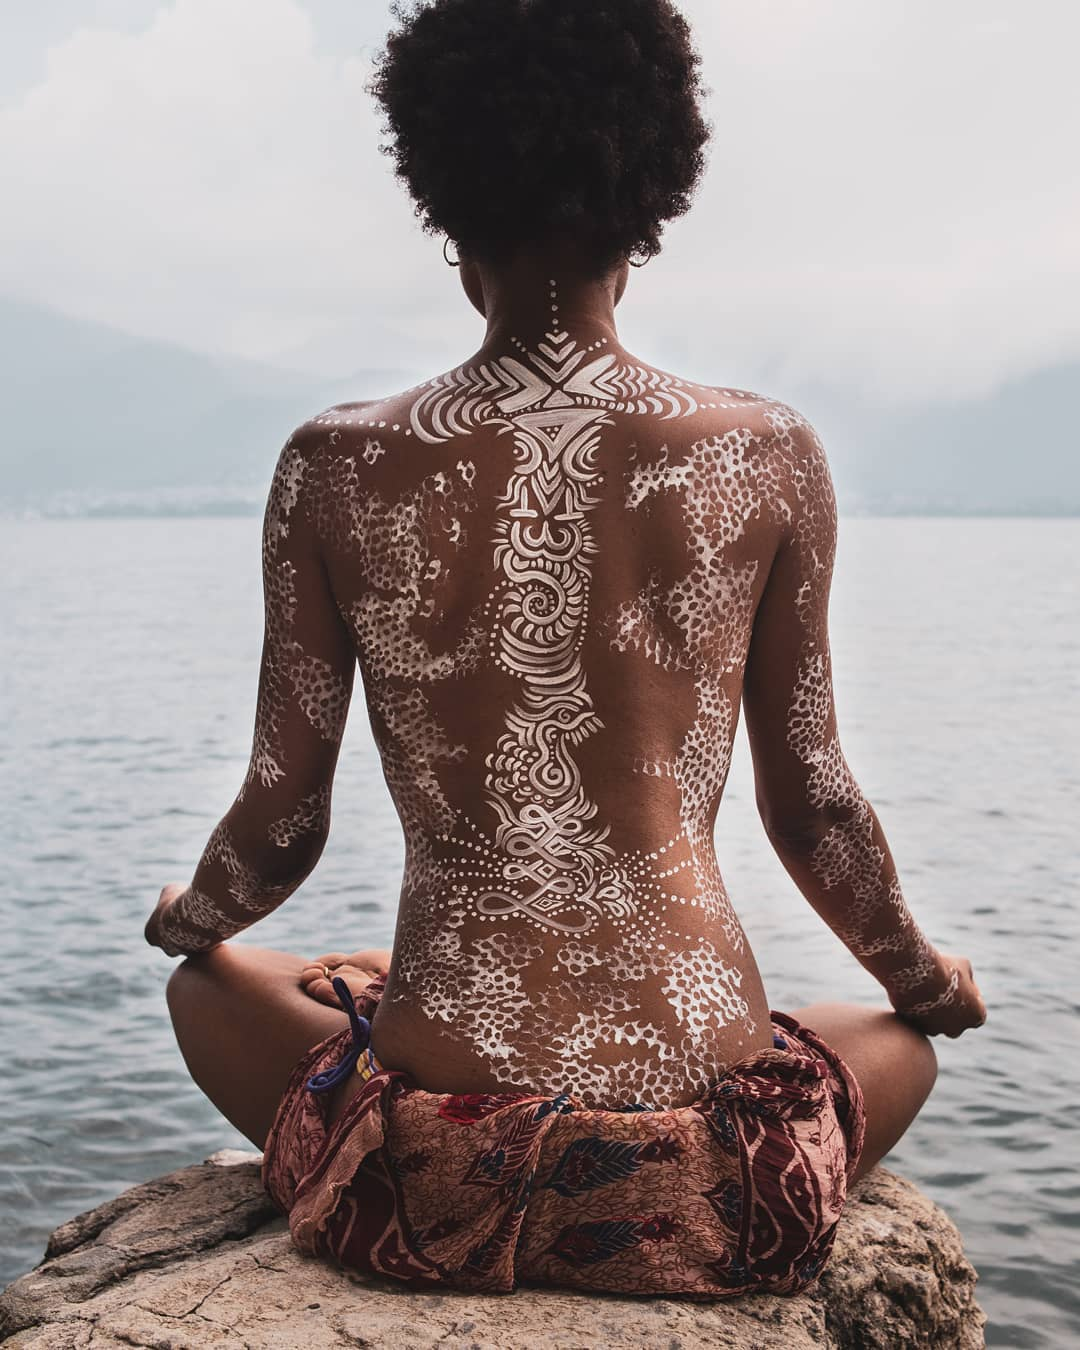 Photo by  Chapepi DAK    Body paint by  Léna Lucie Lou Costunomade